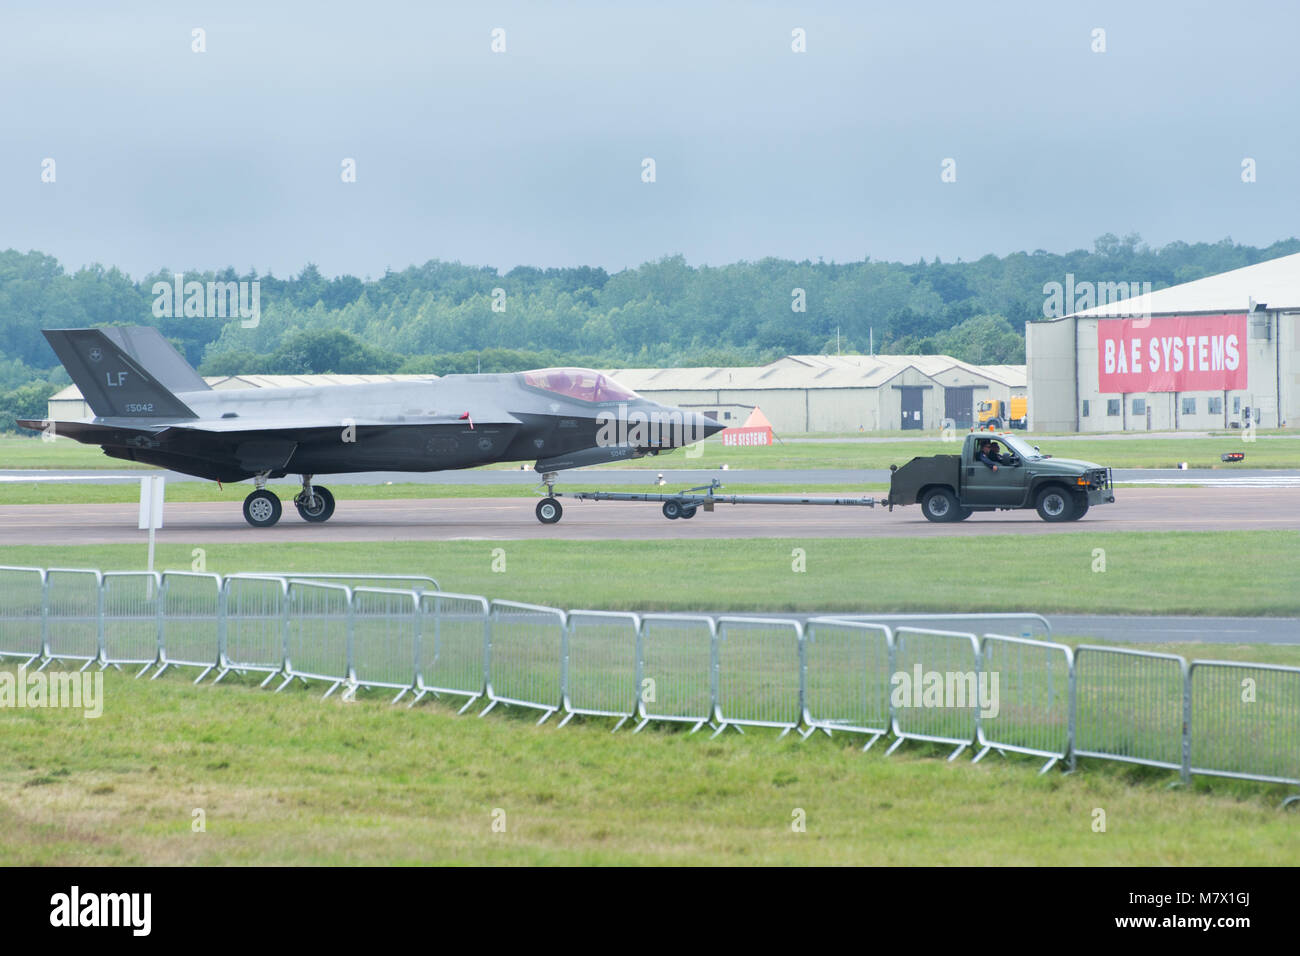 F35 Lockheed Martin Jet Being Towed To The Runway Stock Photo